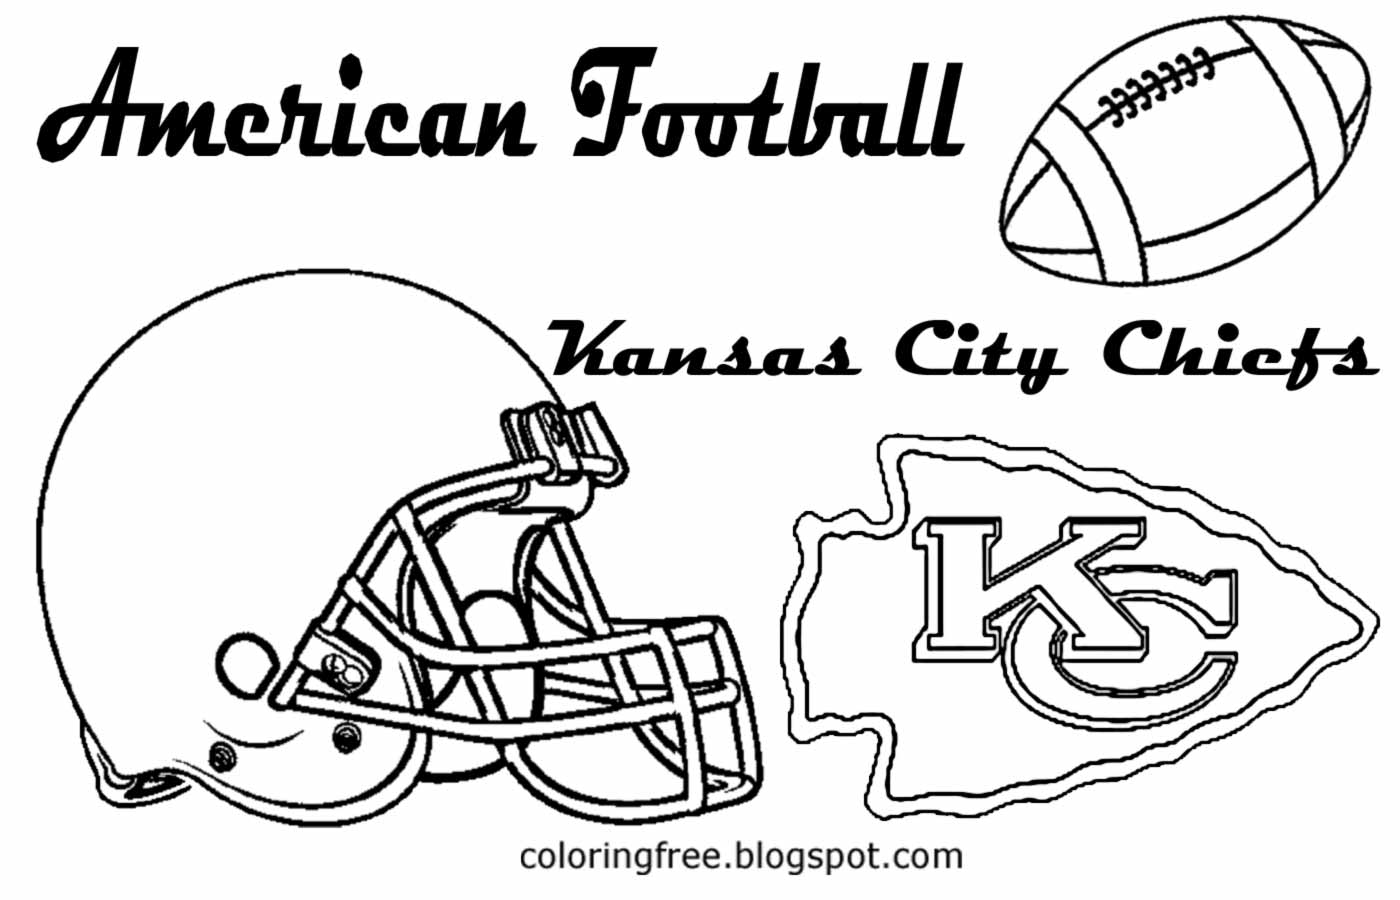 kc chiefs coloring pages - photo#4